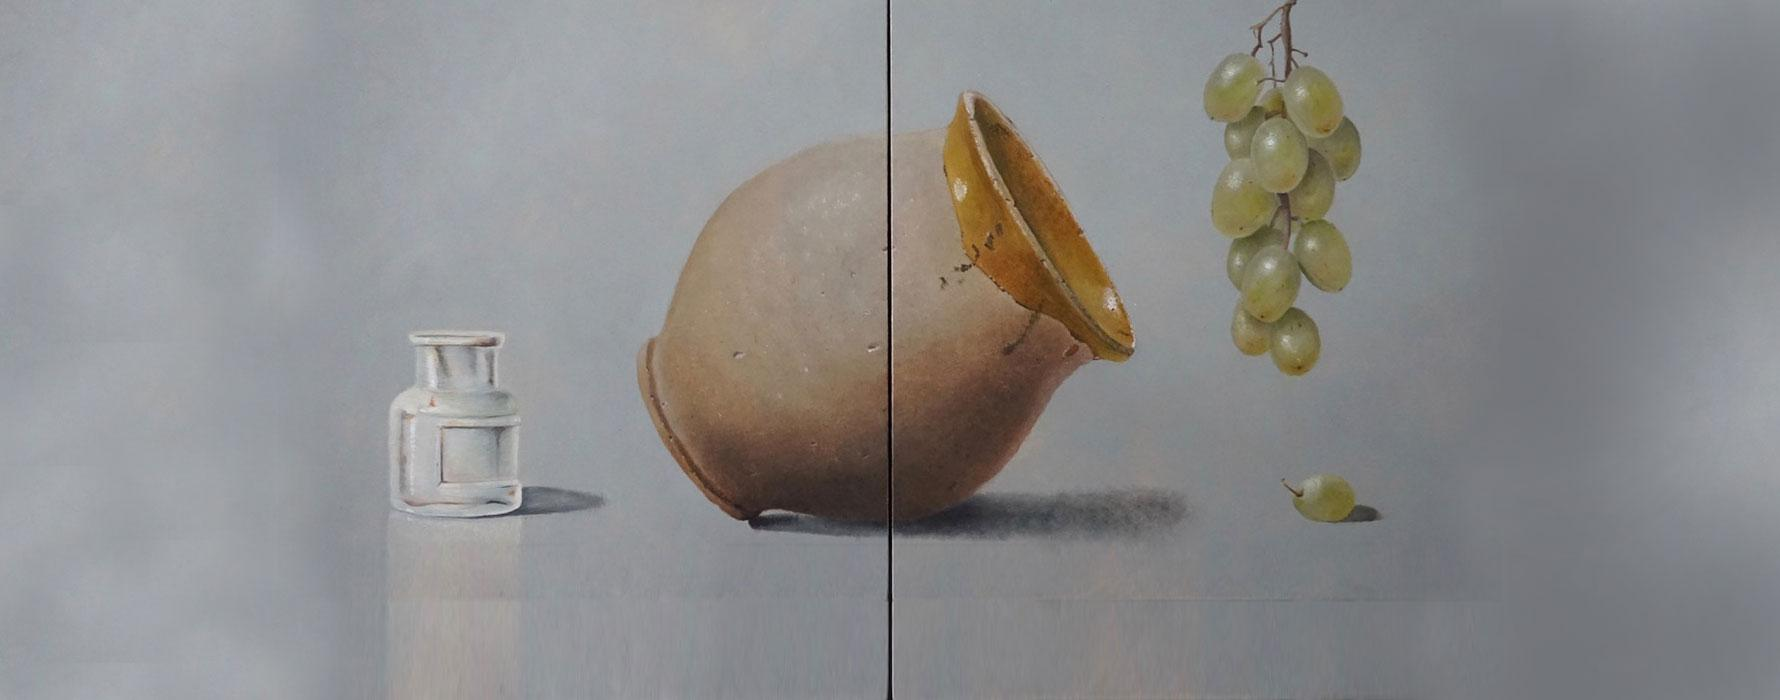 Painting of bottle, jar and grapes